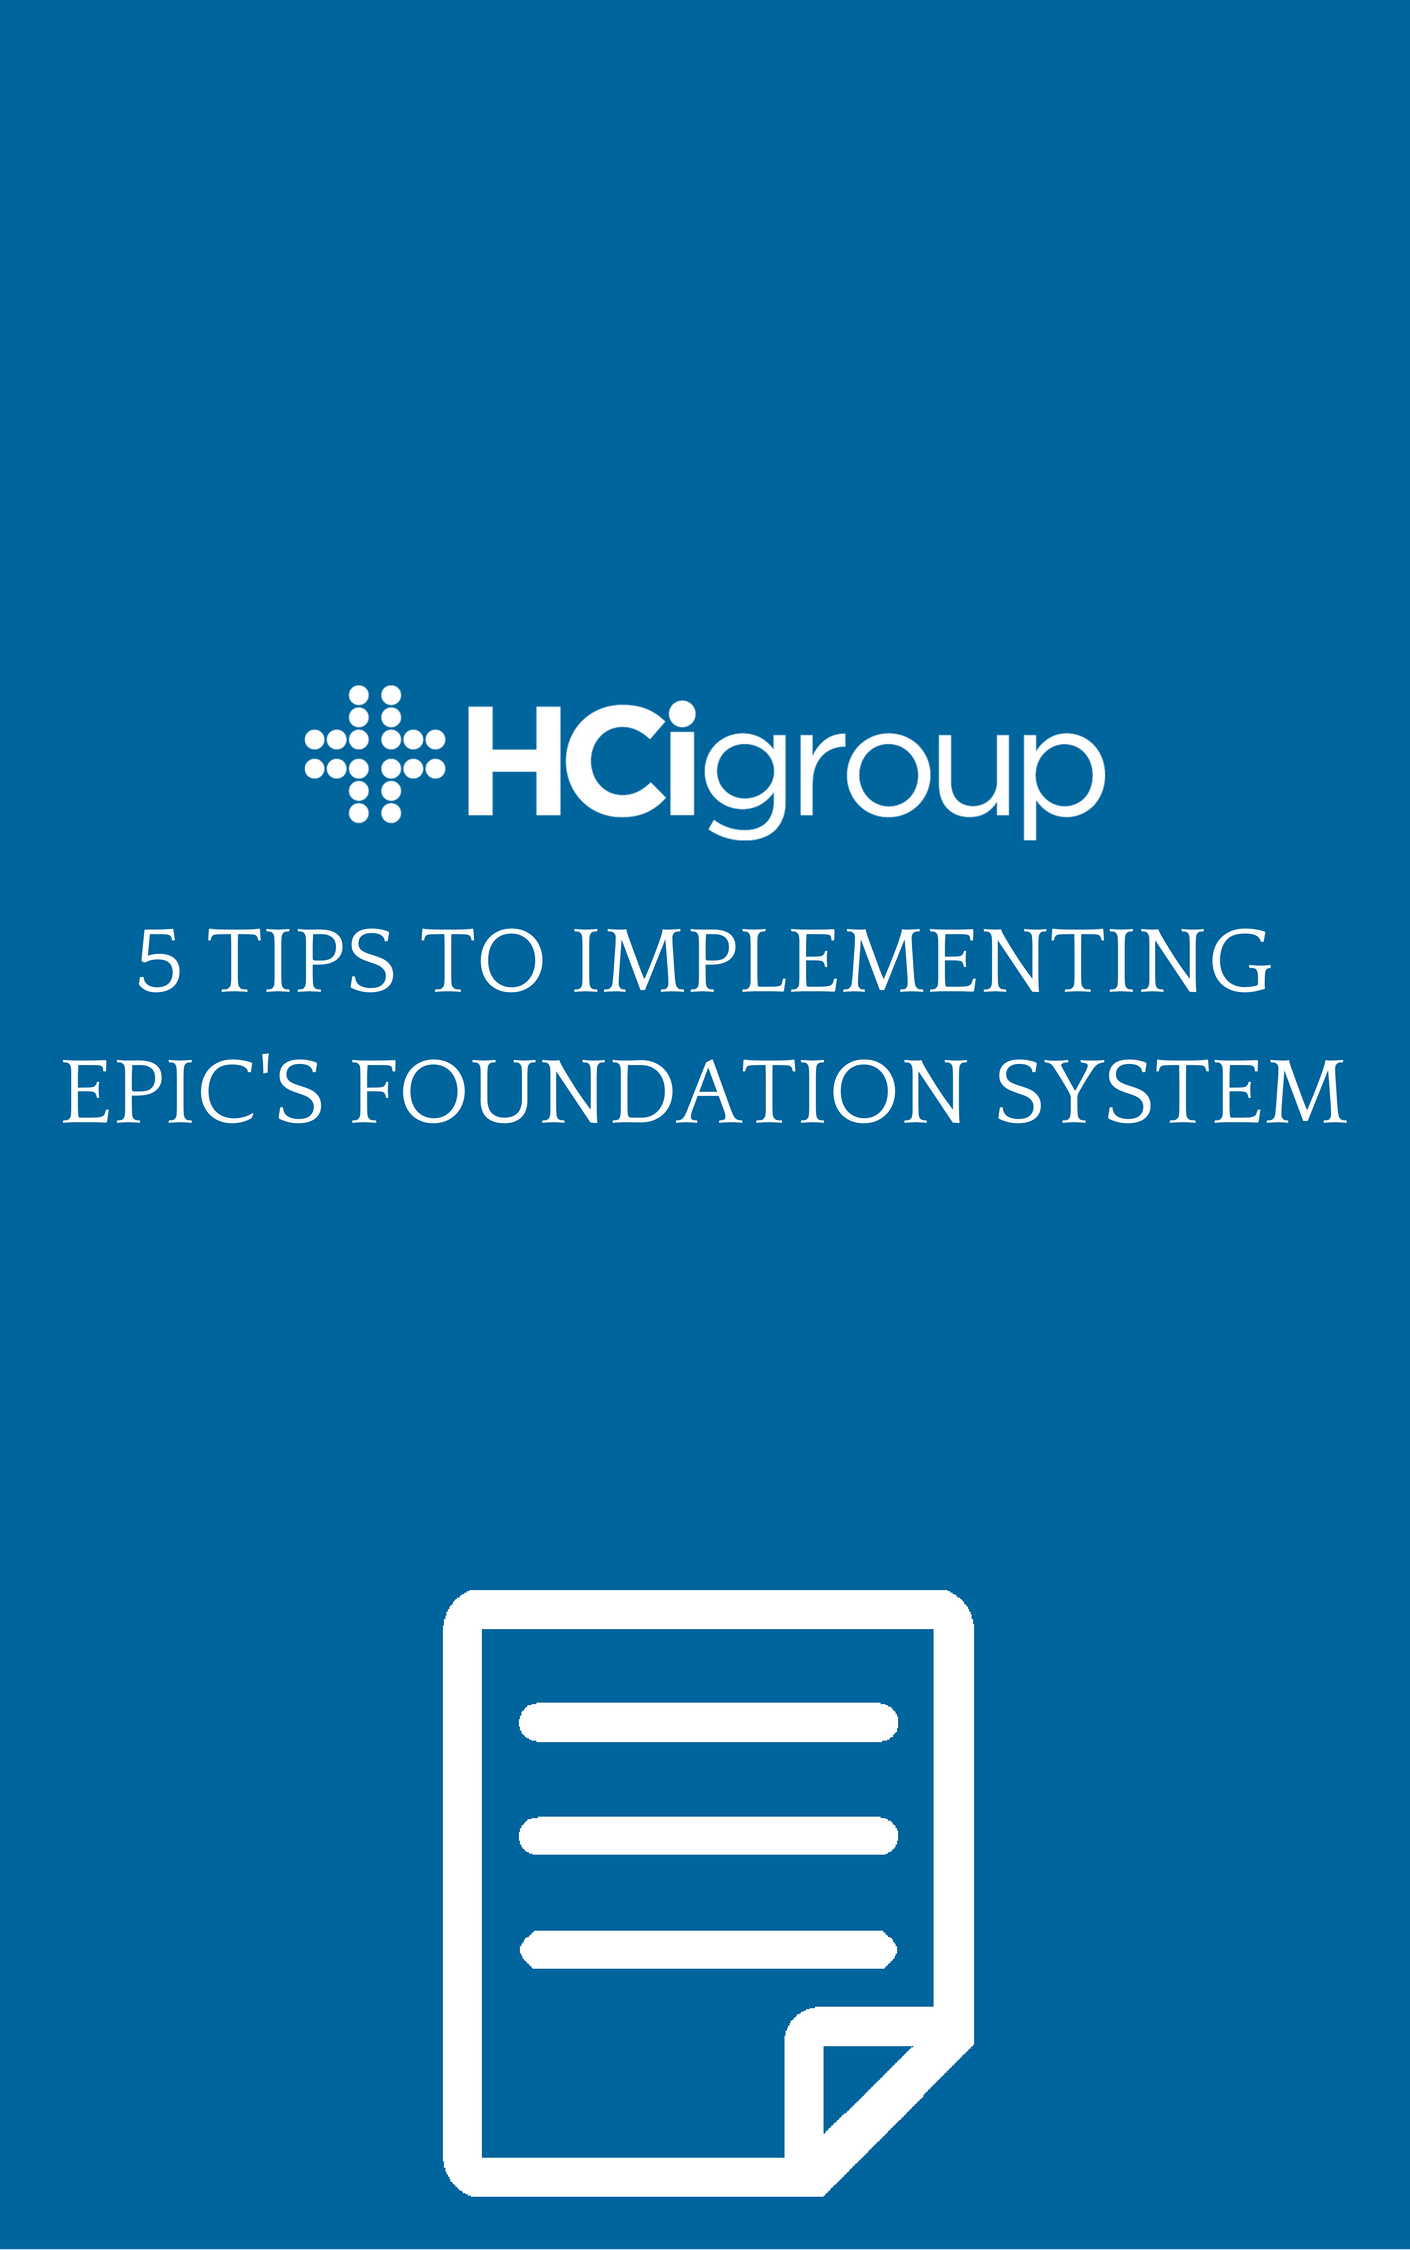 5 Tips to Implementing Epic's Foundation System